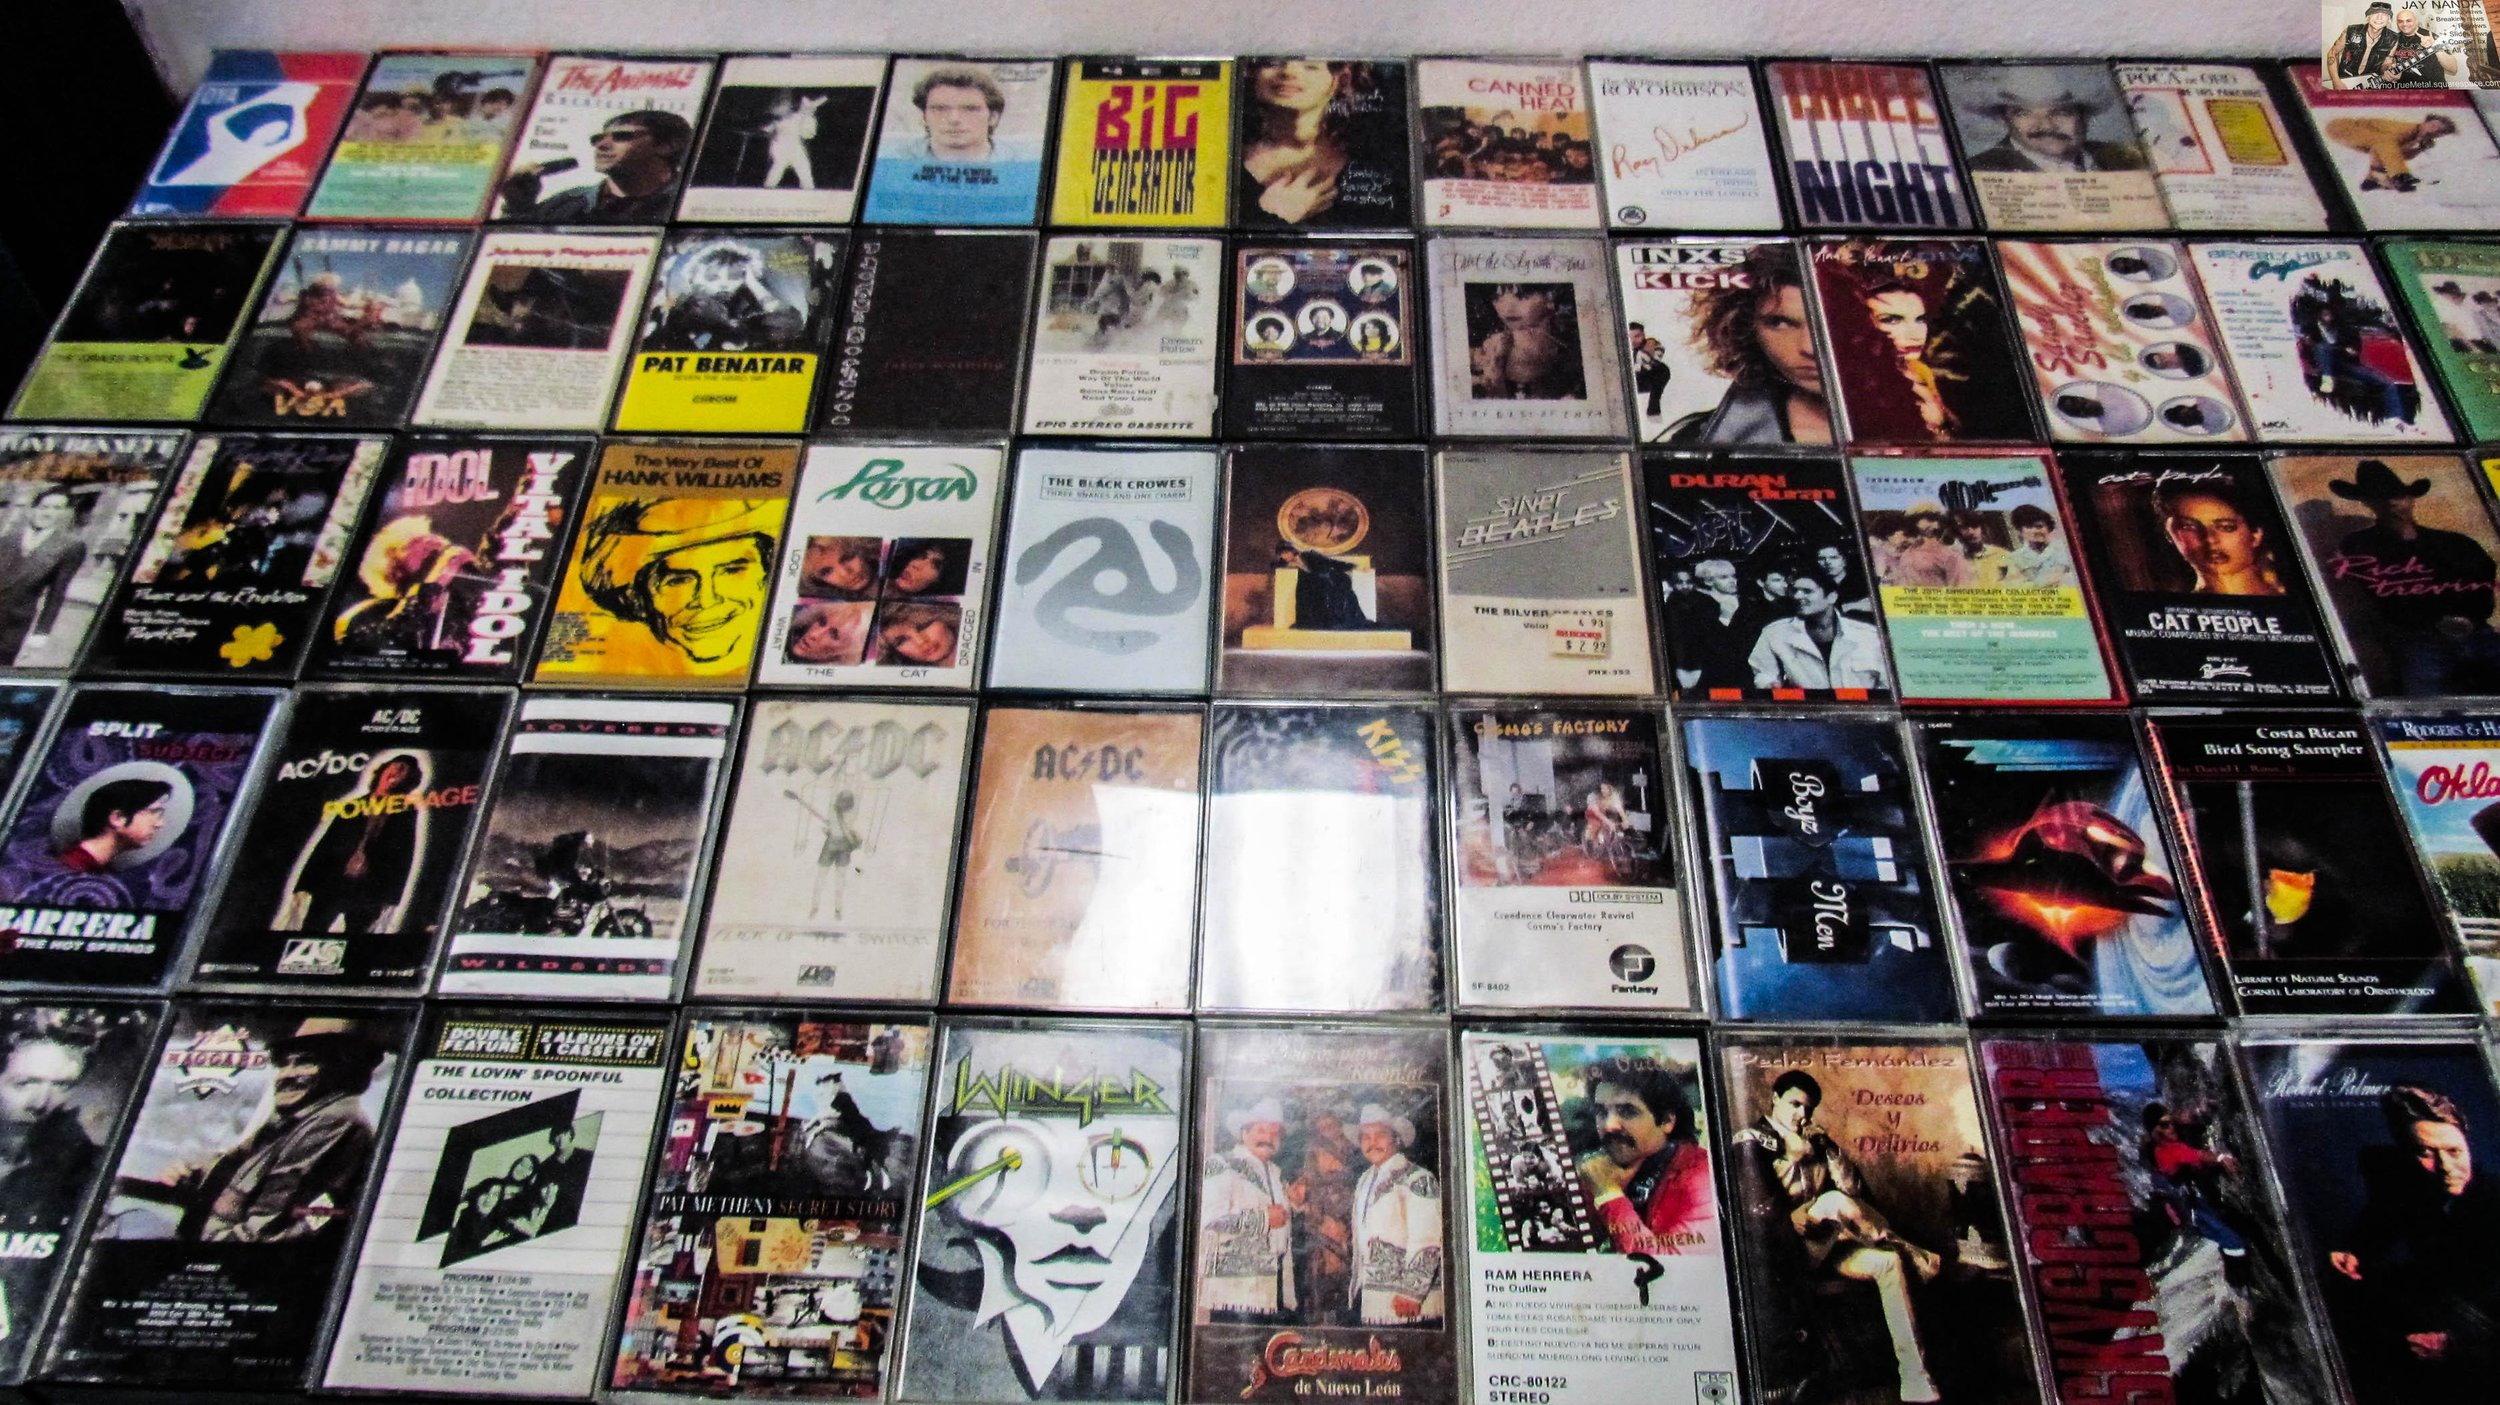 Cassettes are displayed neatly.